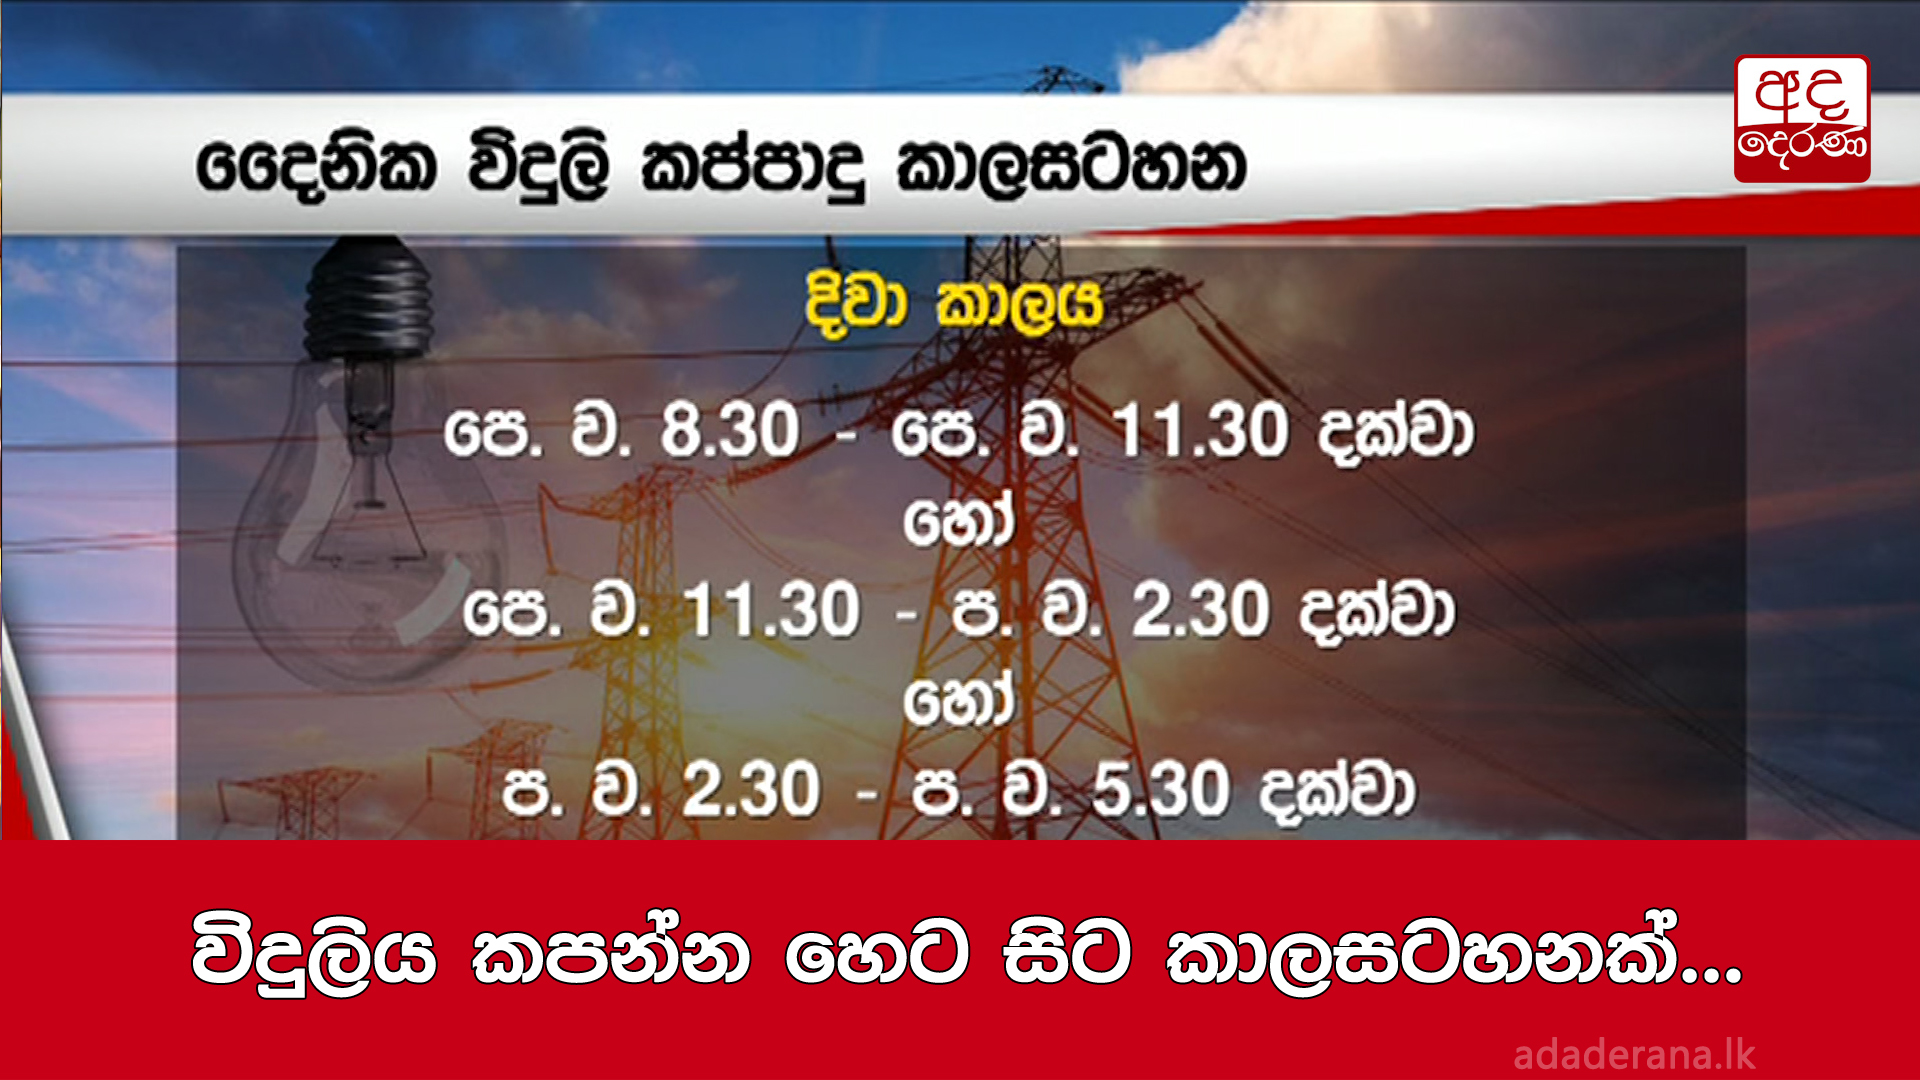 Scheduled power cuts from tomorrow onward